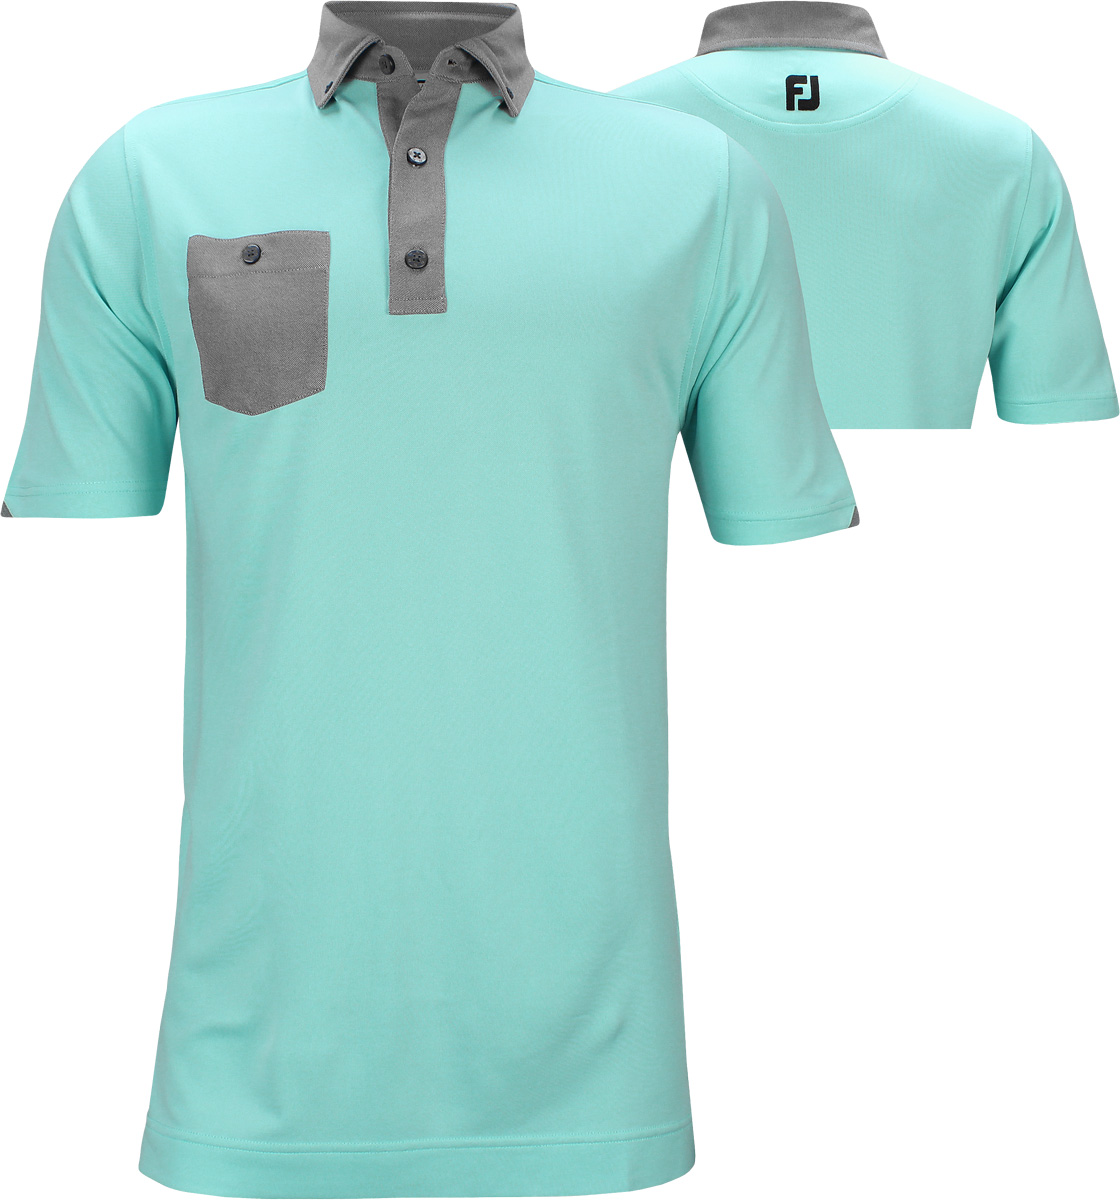 737b7100 Tour Golf Shirts | Top Mode Depot